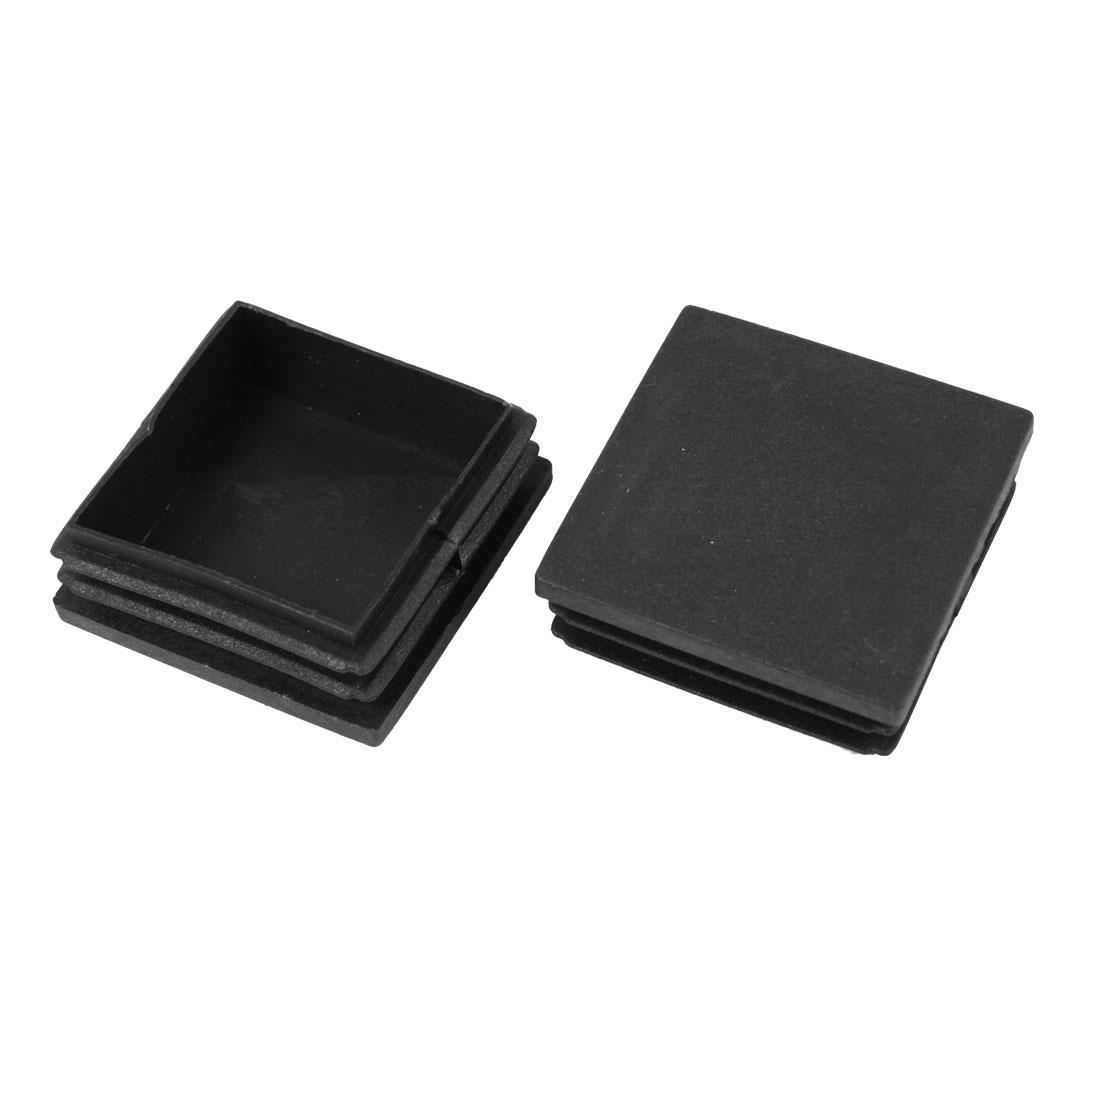 2 Pieces Black Plastic Square Blanking End Caps Tubing Tube Inserts 50mm x 50mm